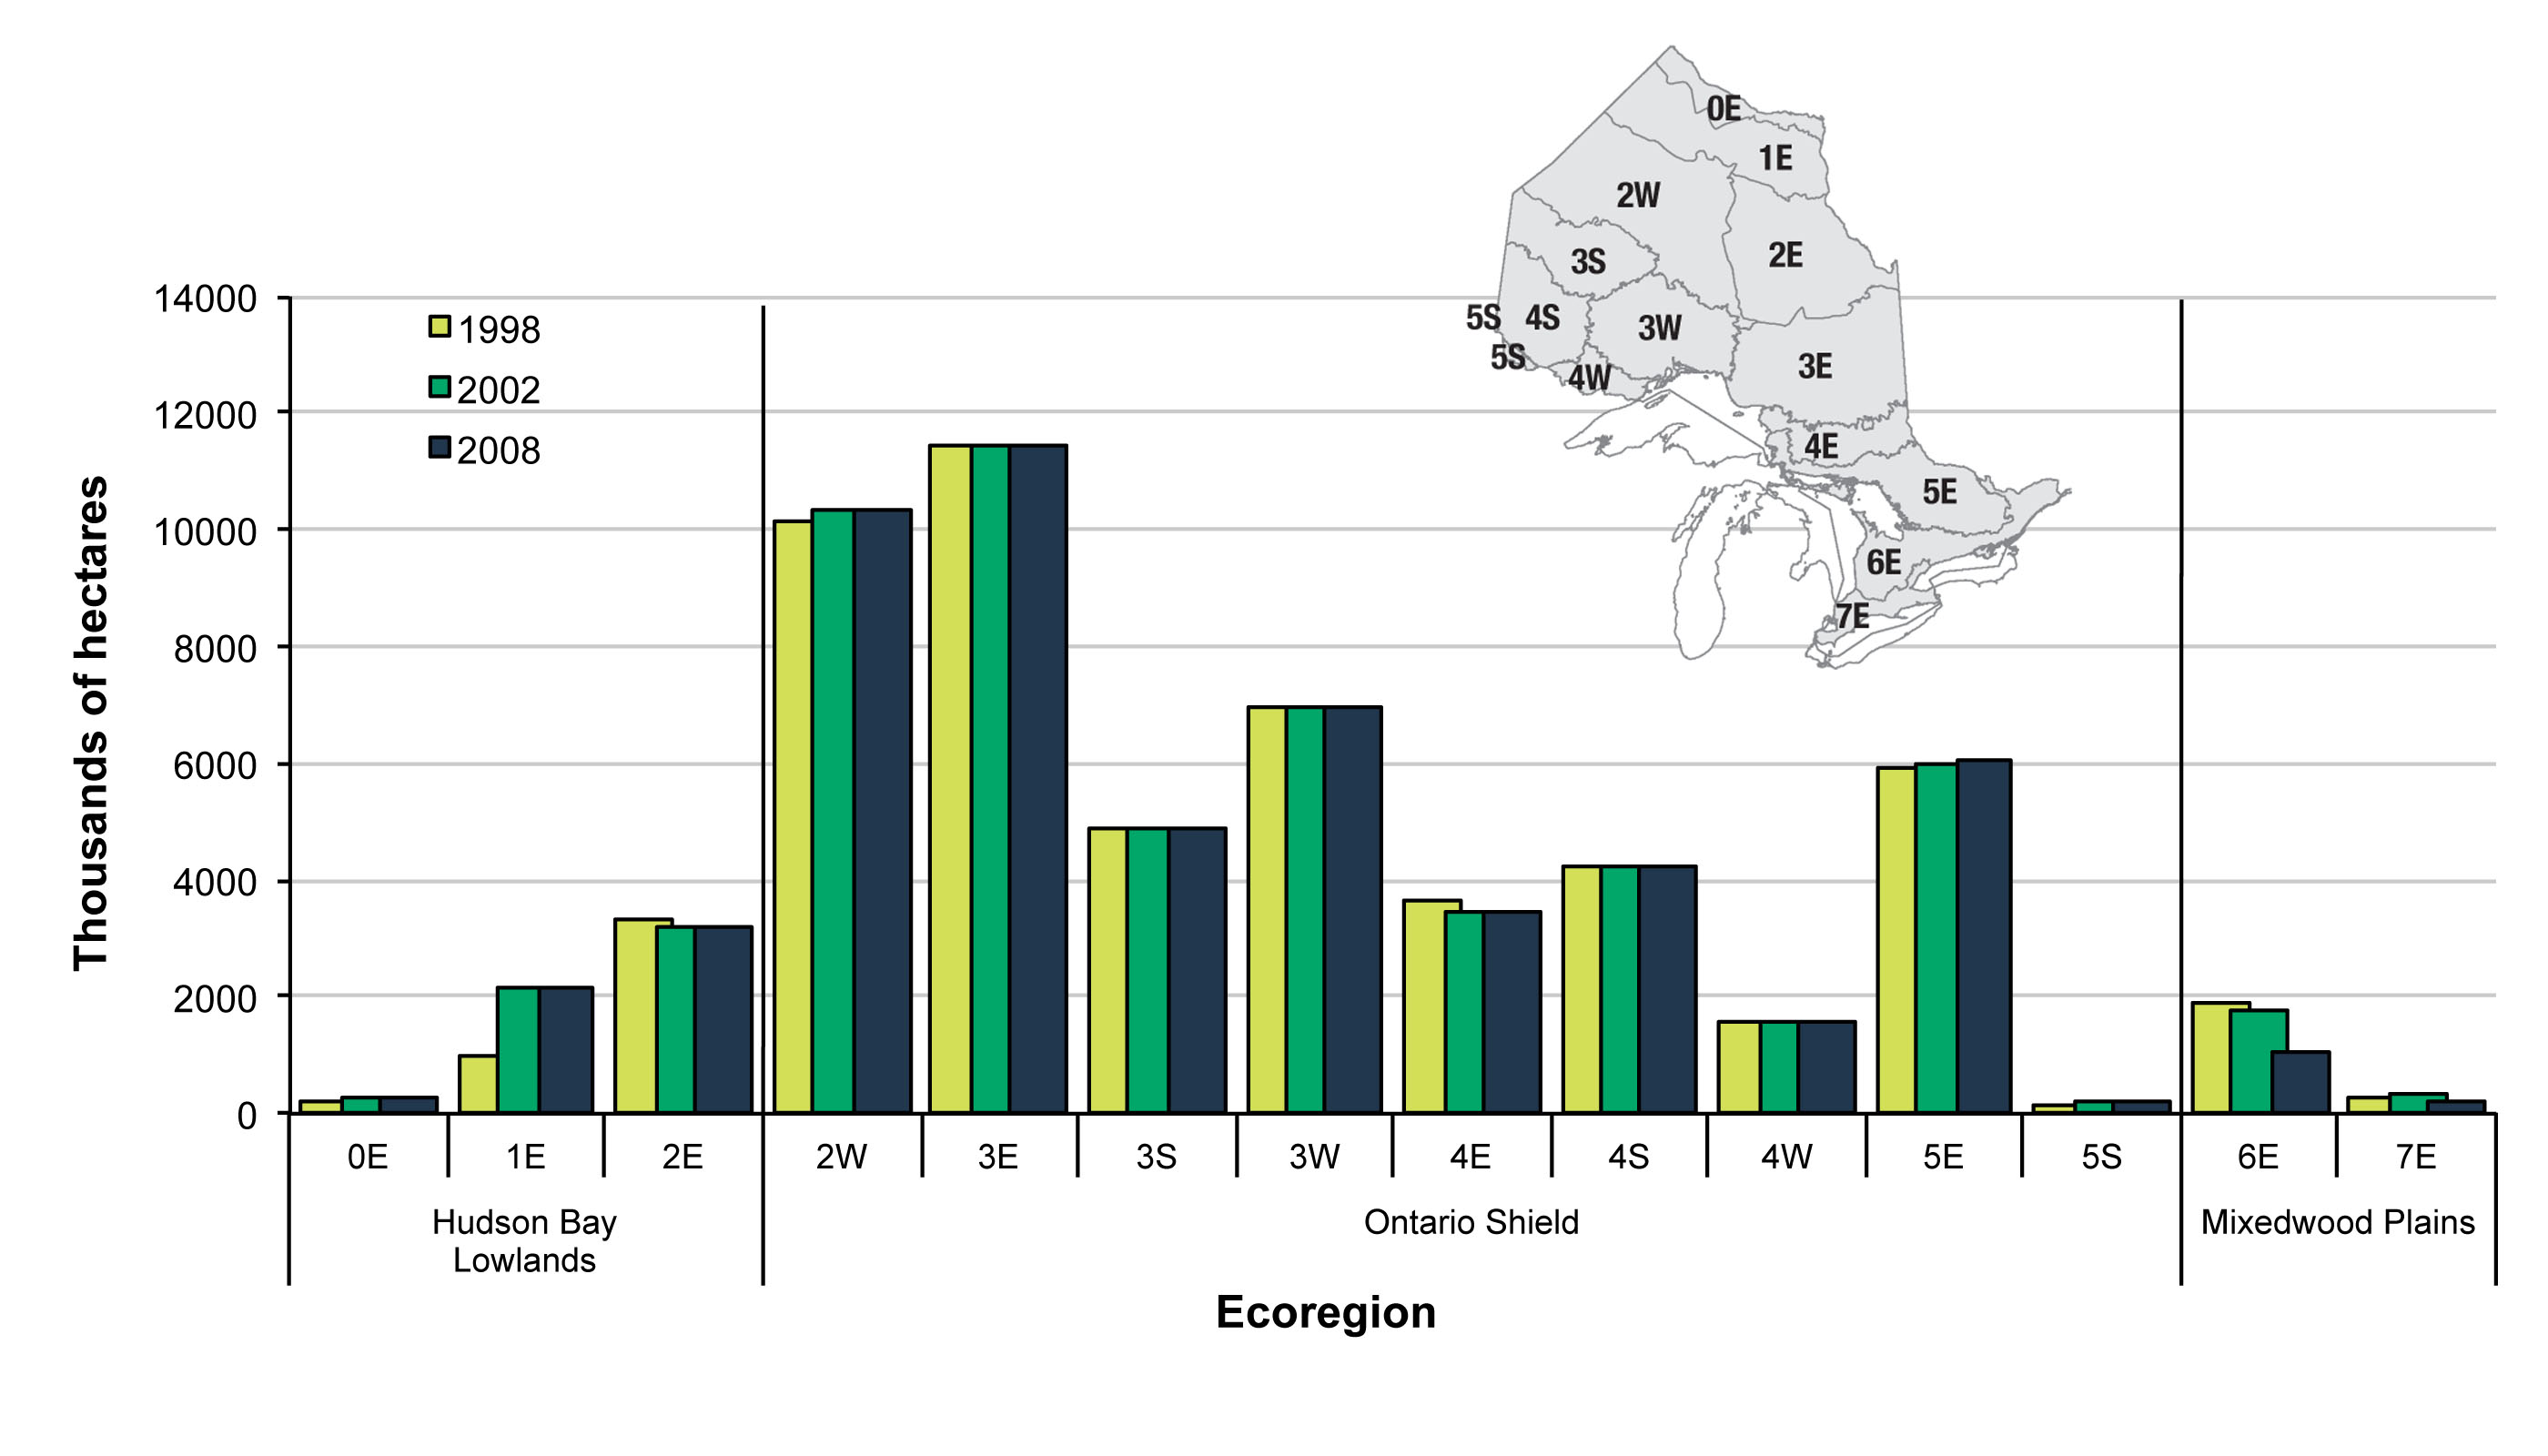 Figure 2. Total area of forested land by ecoregion in each ecozone in 1998, 2002 and 2008 (Inset map – Ontario's ecoregions).